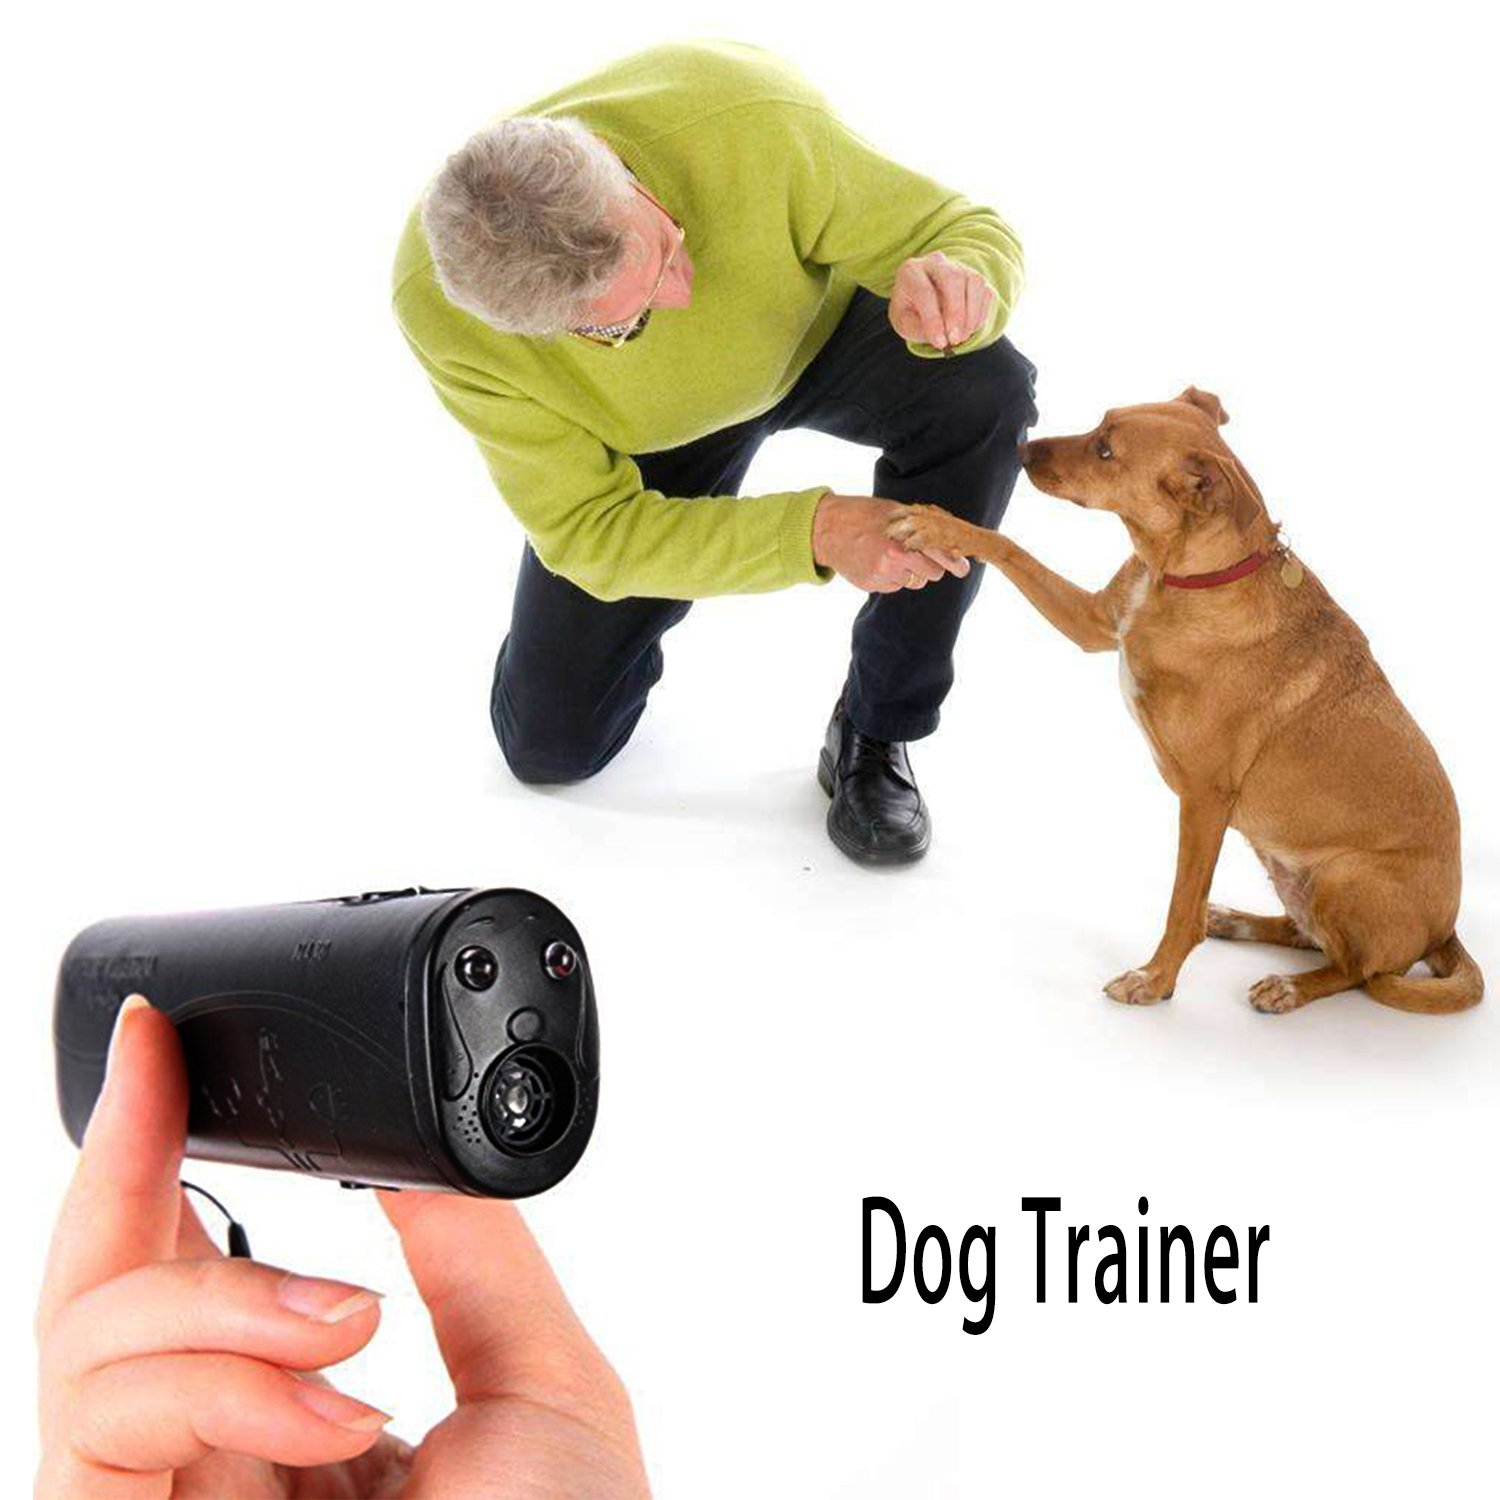 Wirsv Led Ultrasonic Dog Repeller 3 In 1 Pet Whistle Pc Related Power Supplies And Control Anti Bark Stop Barking Training Trainer Gray